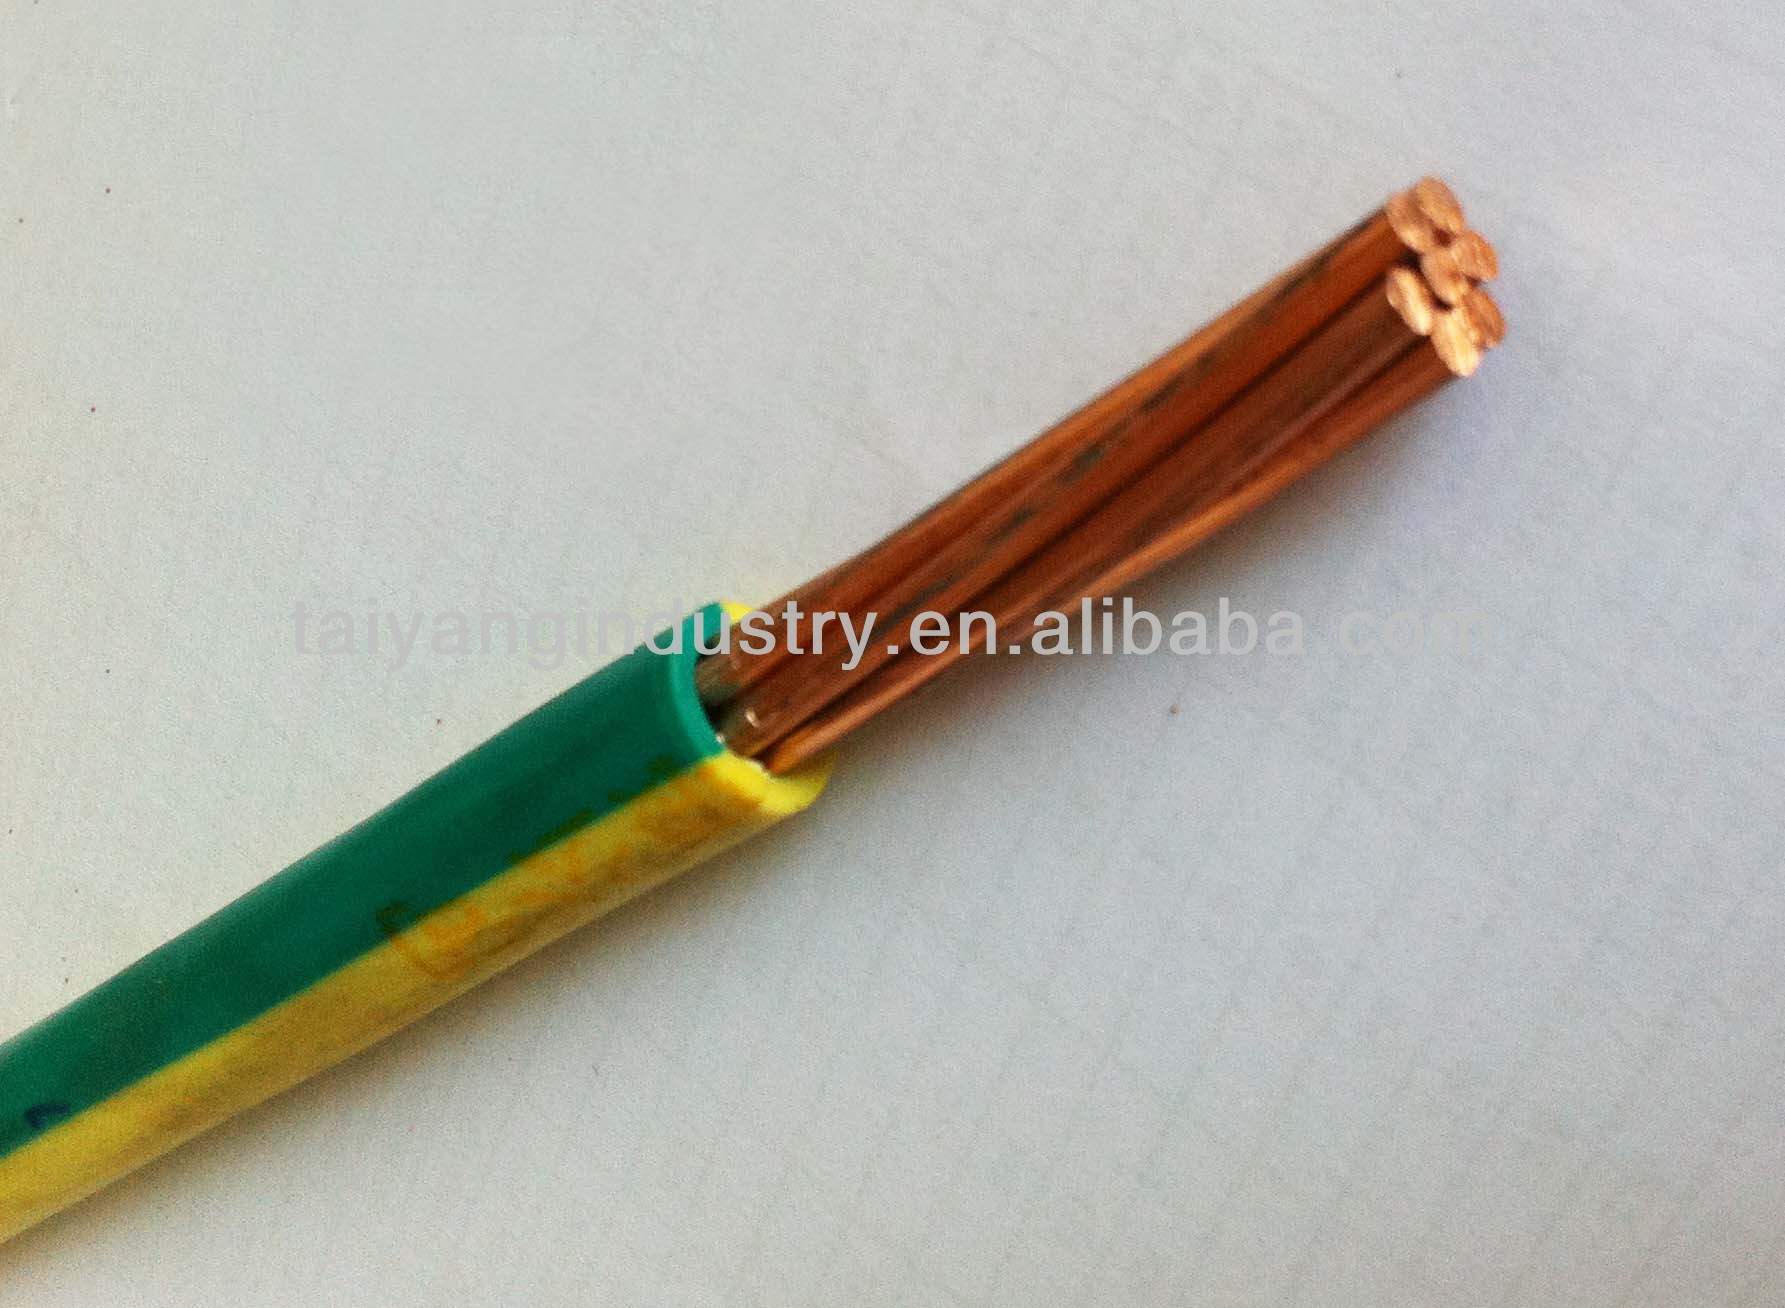 Thw Copper Straned Wire 14 Awg - Buy Thw 14awg,Thw 14 Awg,Pvc ...